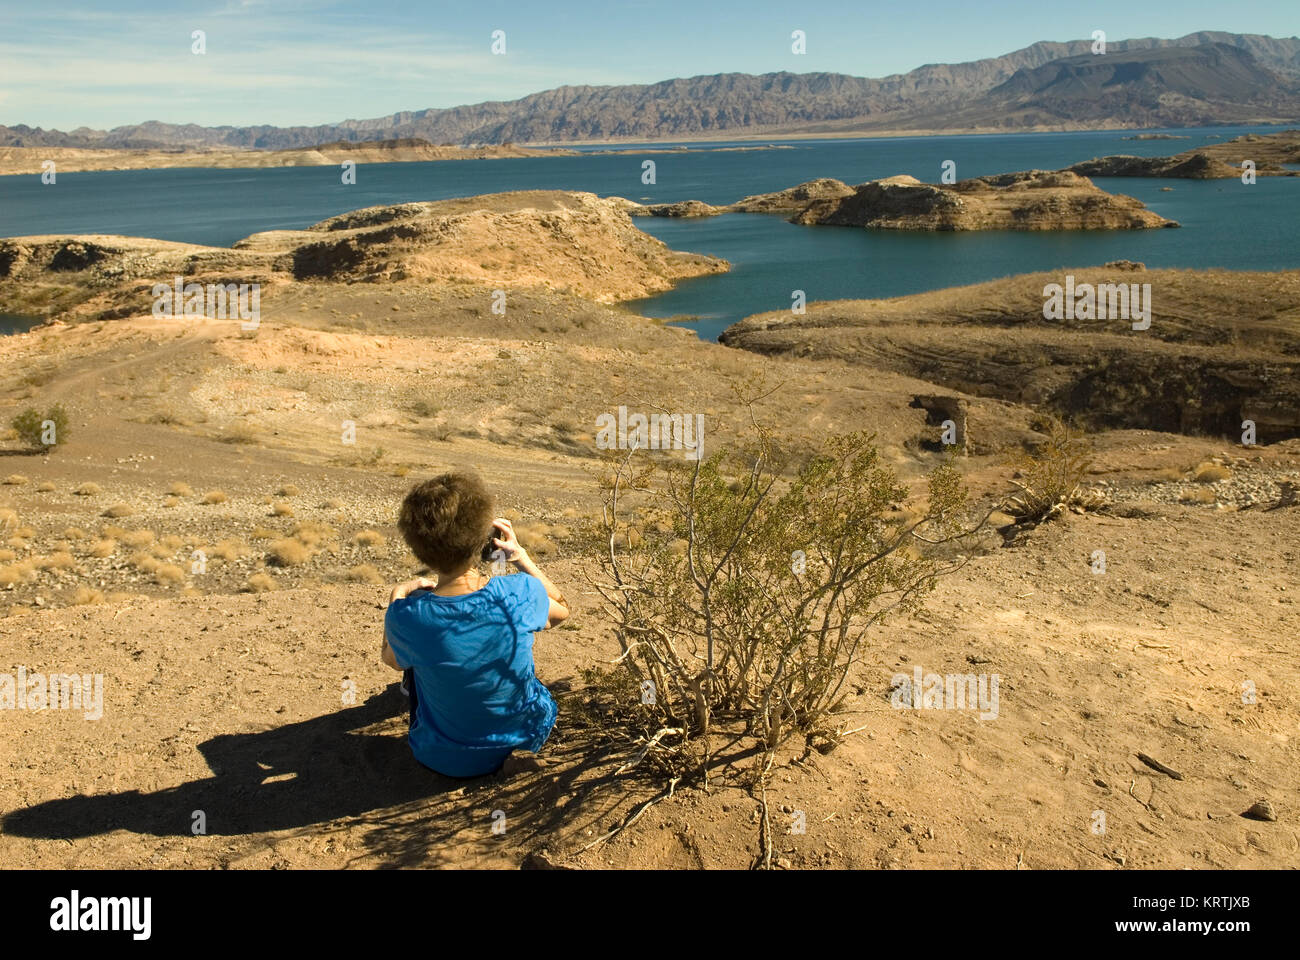 Woman talks on cellphone at Lake Mead National Recreation Area Nevada, USA. - Stock Image